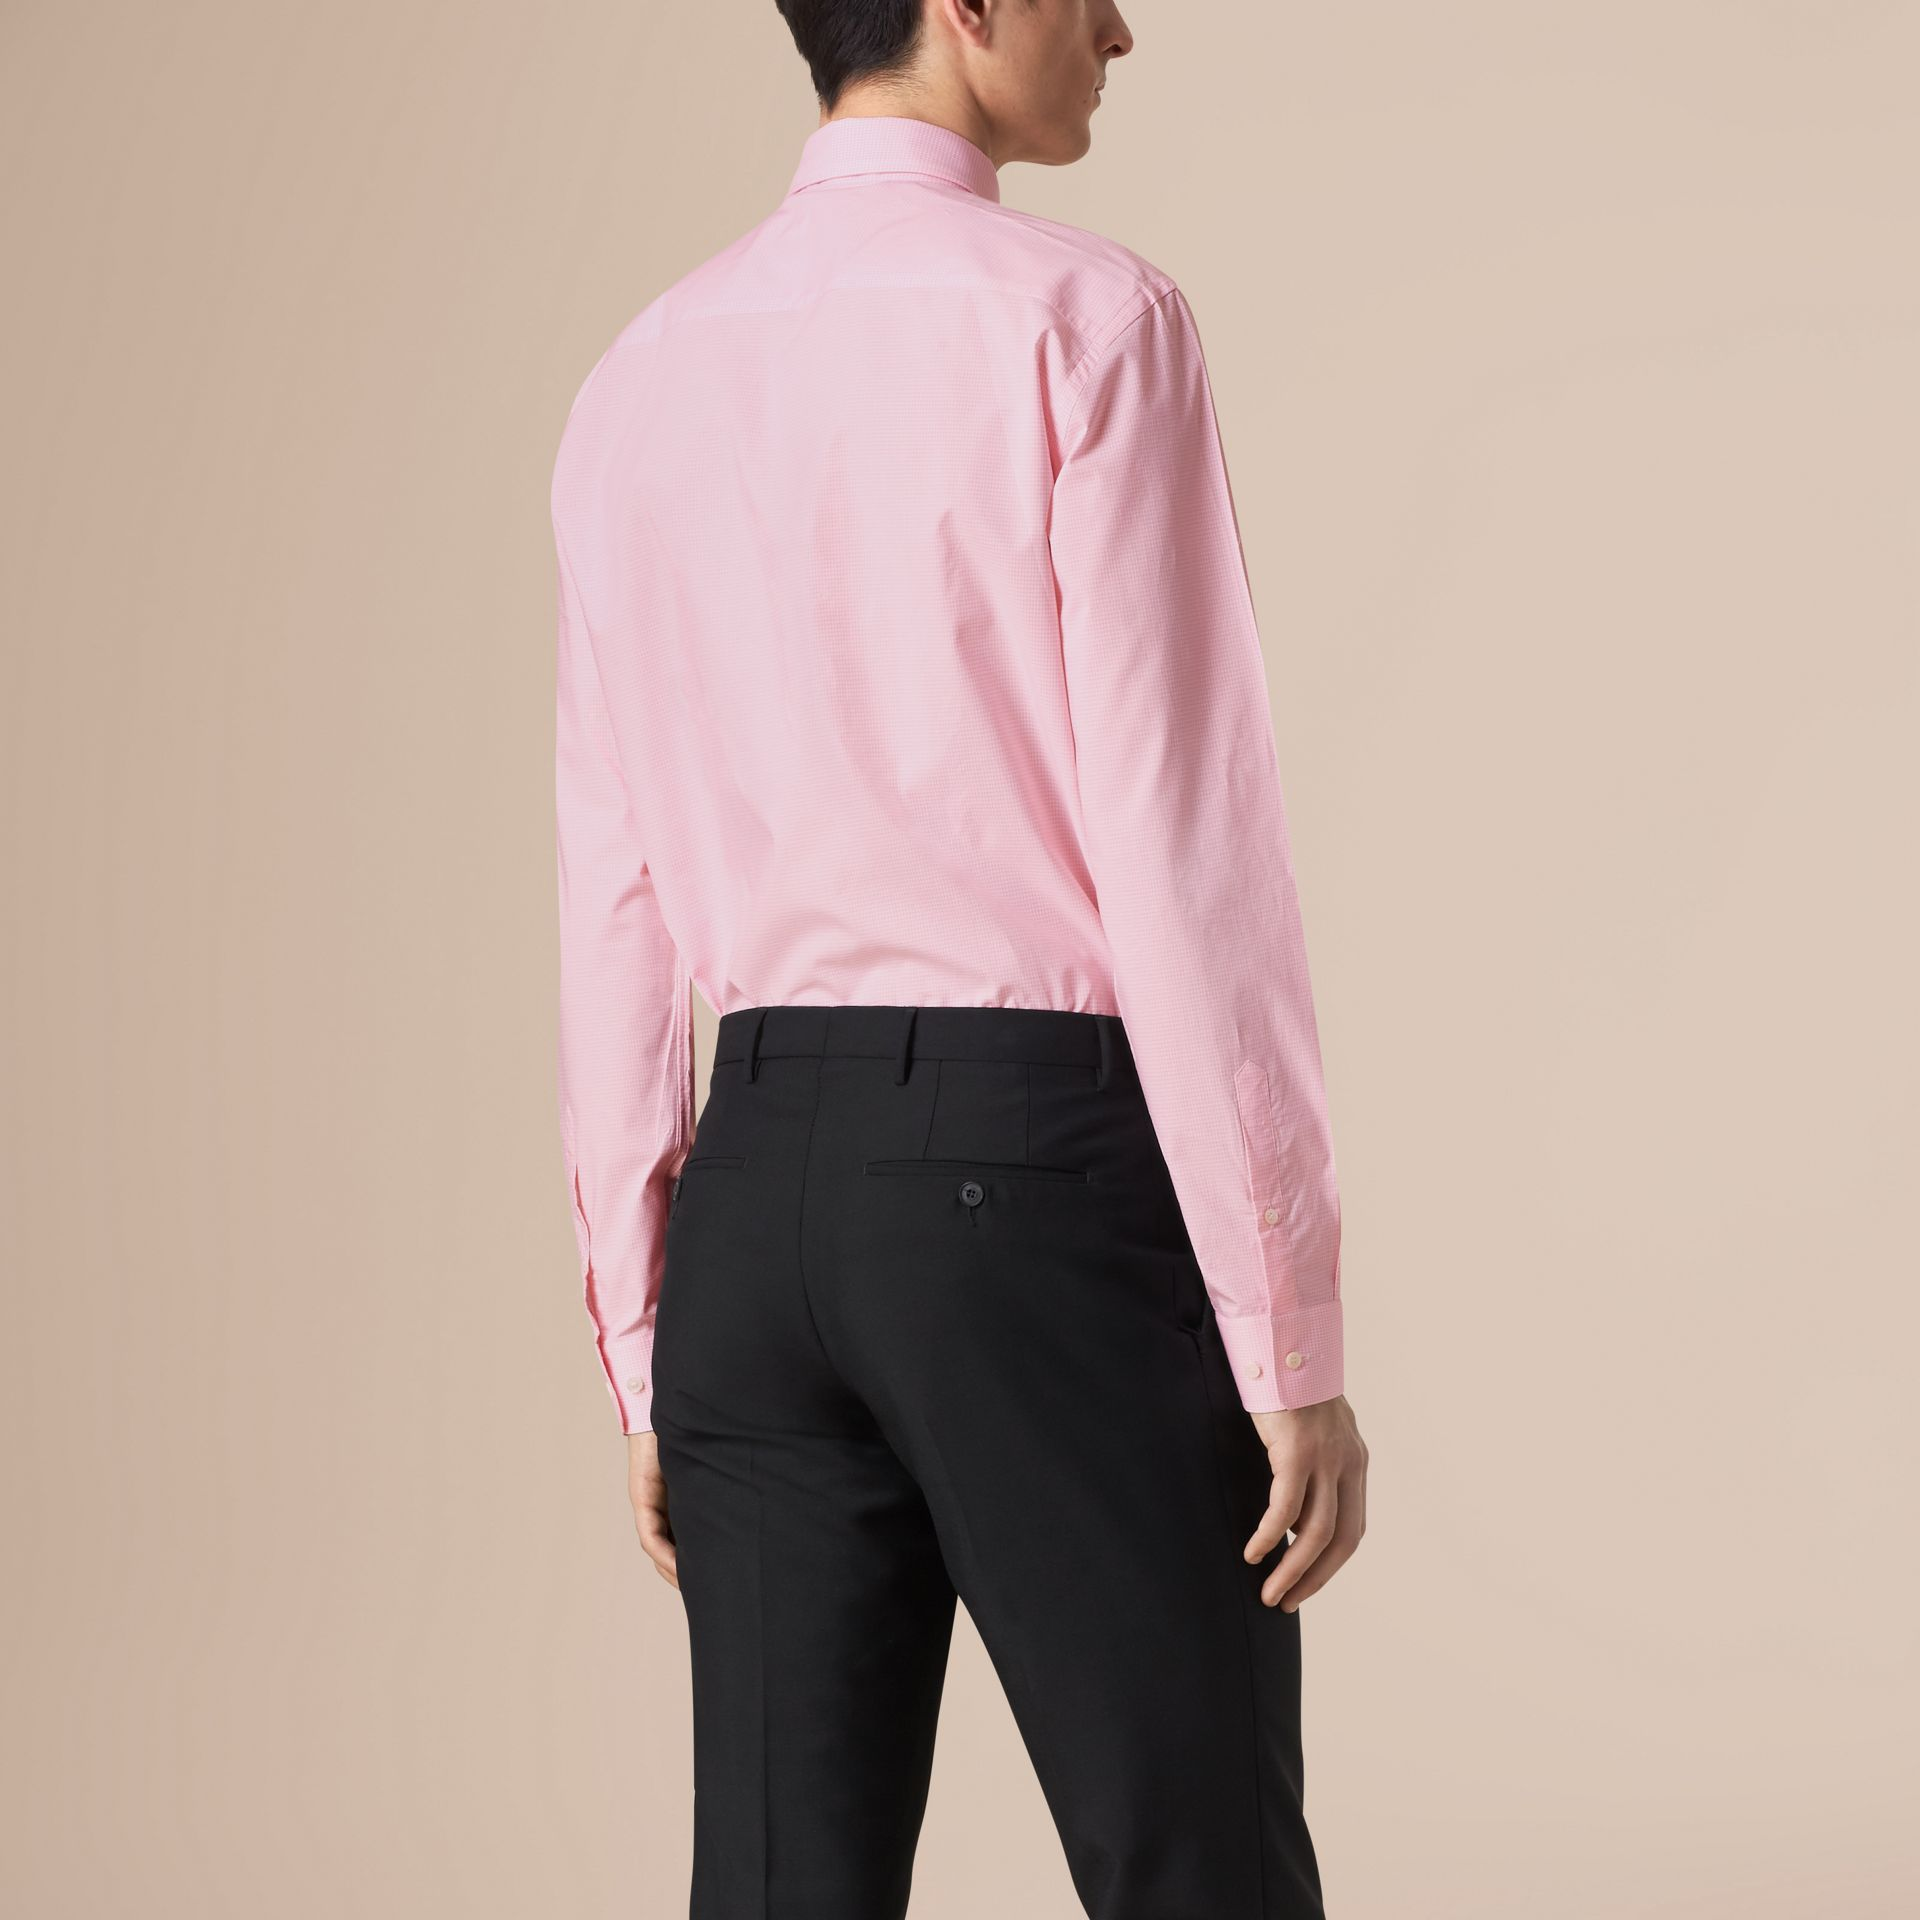 City pink Modern Fit Button-down Collar Gingham Cotton Shirt City Pink - gallery image 3